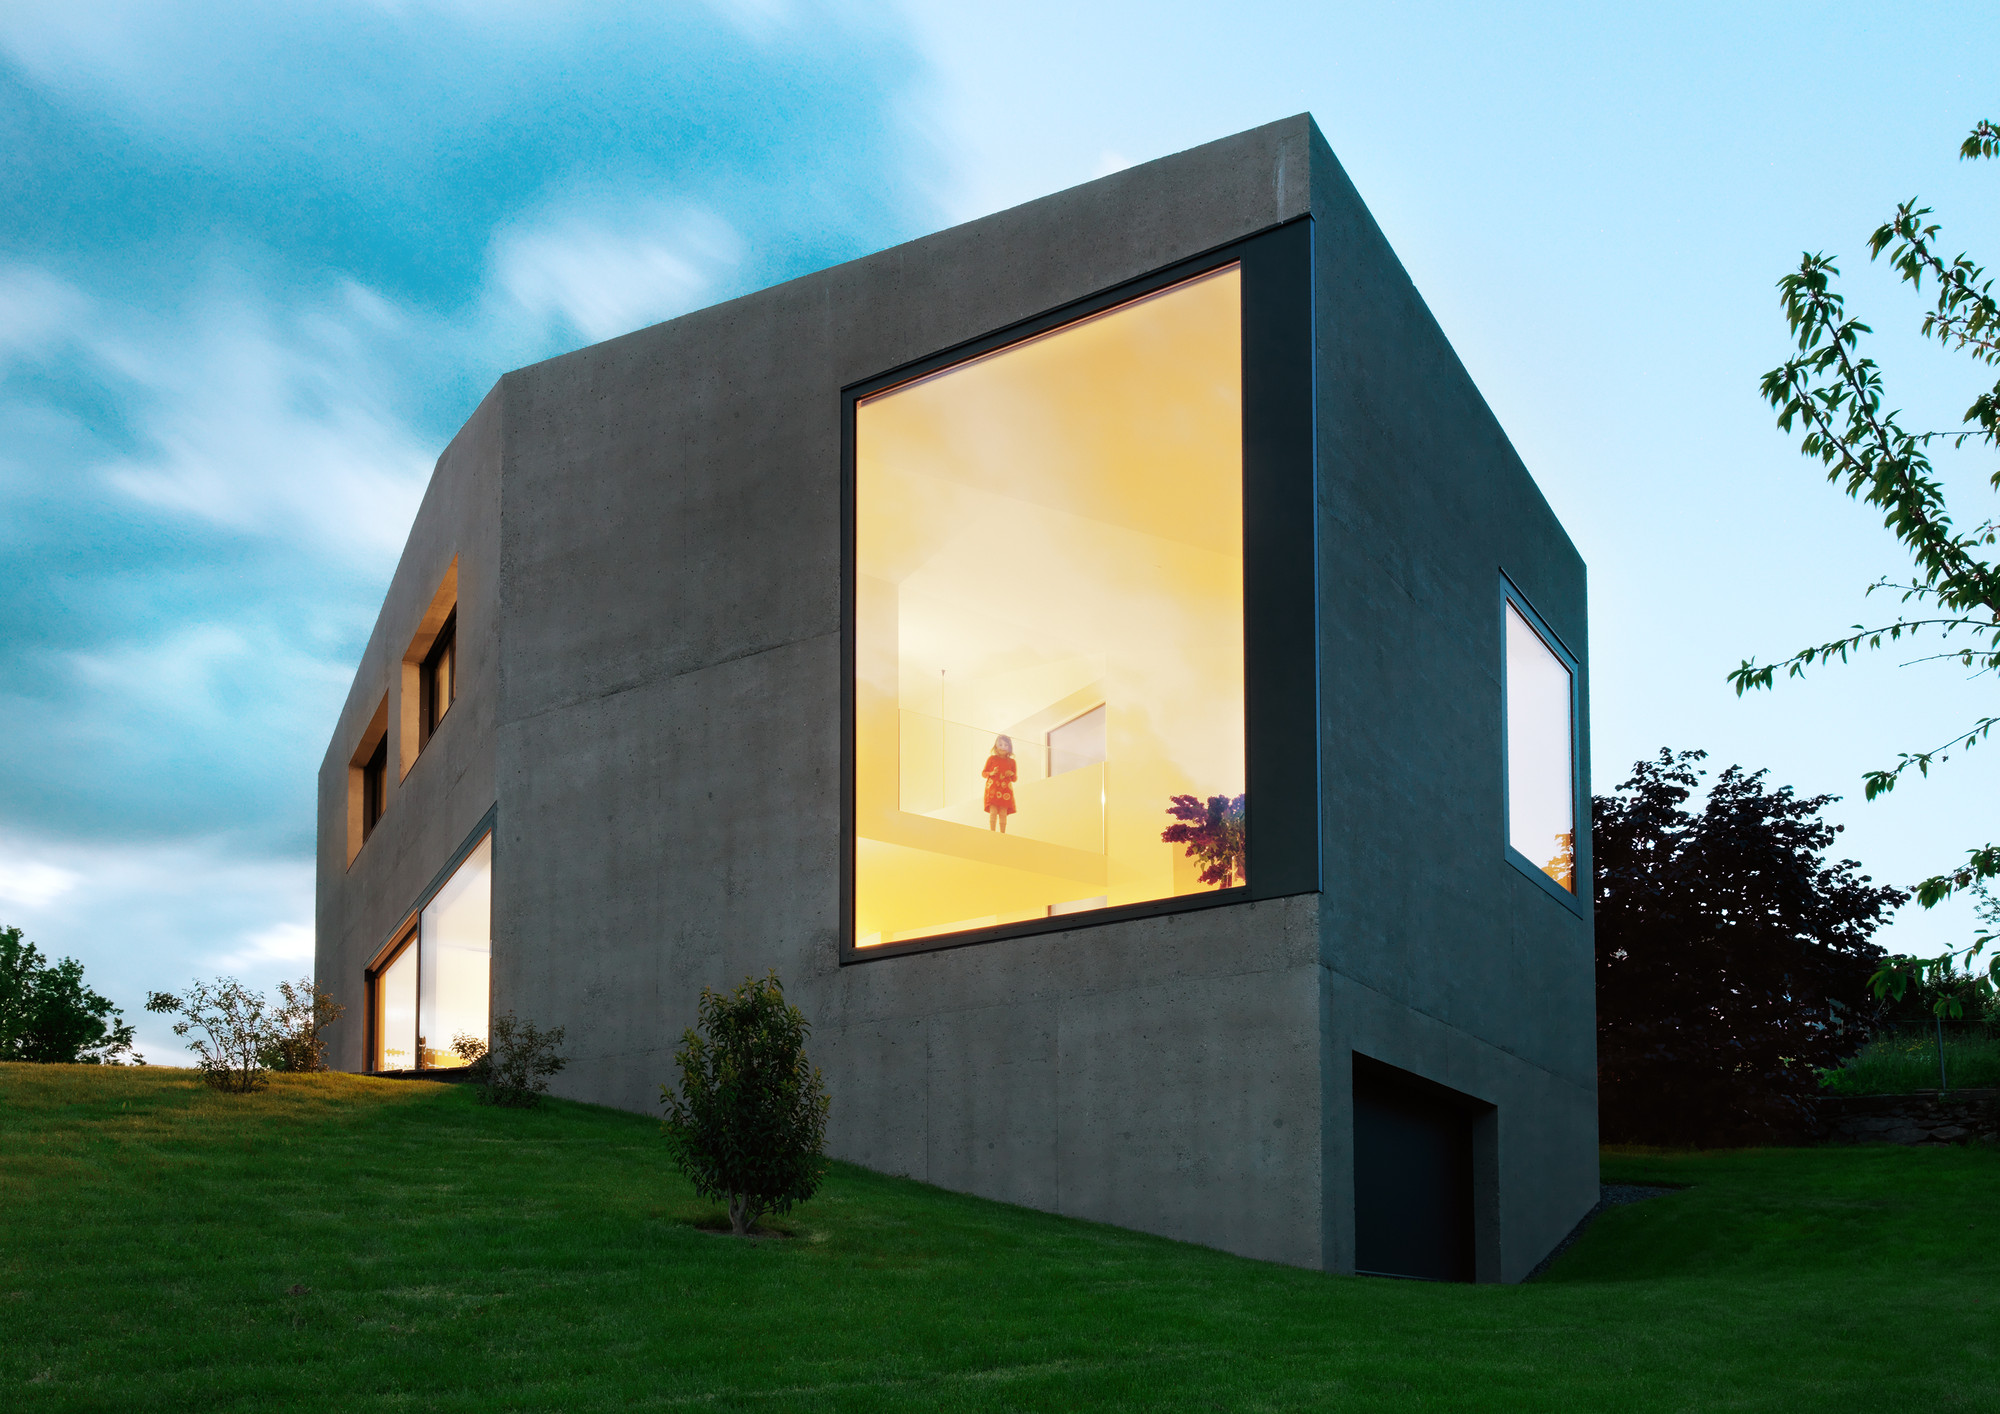 Swiss Society of Engineers and Architects Open Days 2014, Villa Dind / Link Architectes / Photo by Lionel Henriod